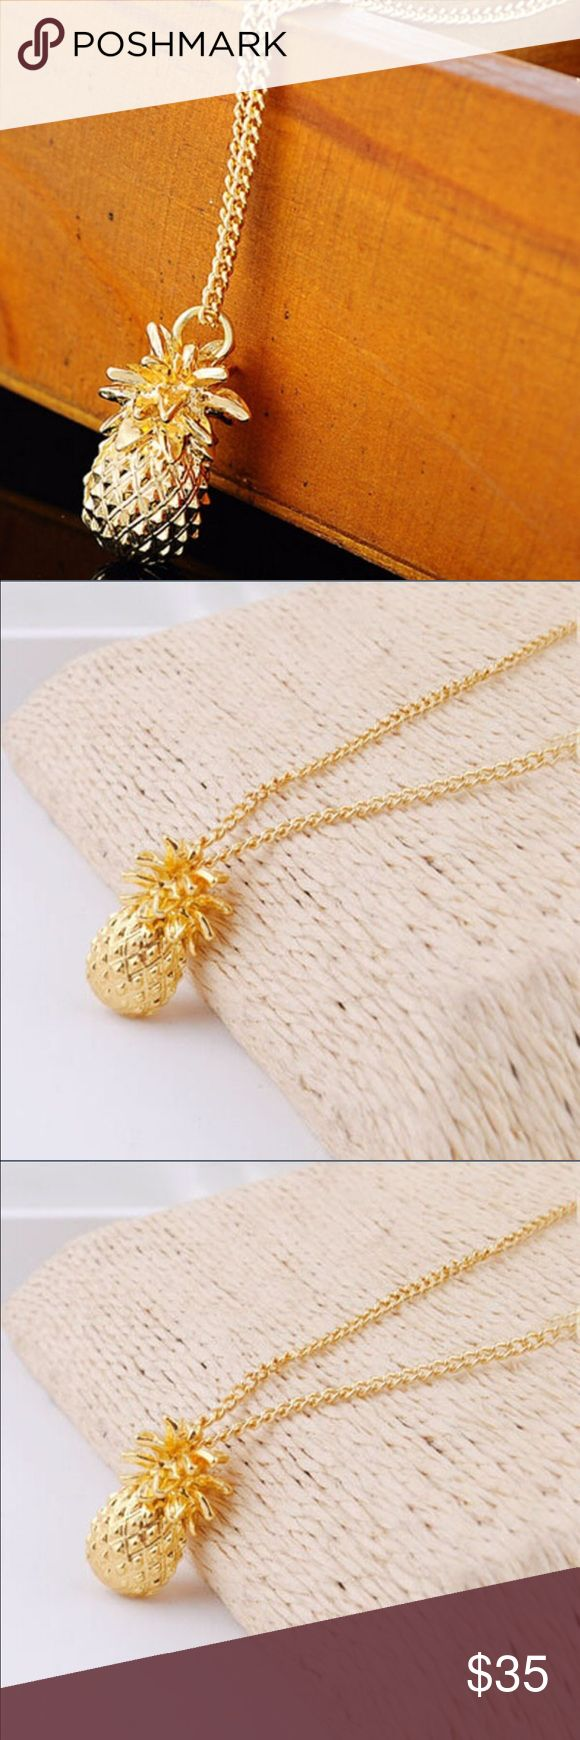 Pineapple Gold Plated Necklace Very cute Gold Plated pineapple necklace. New. Jewelry Necklaces